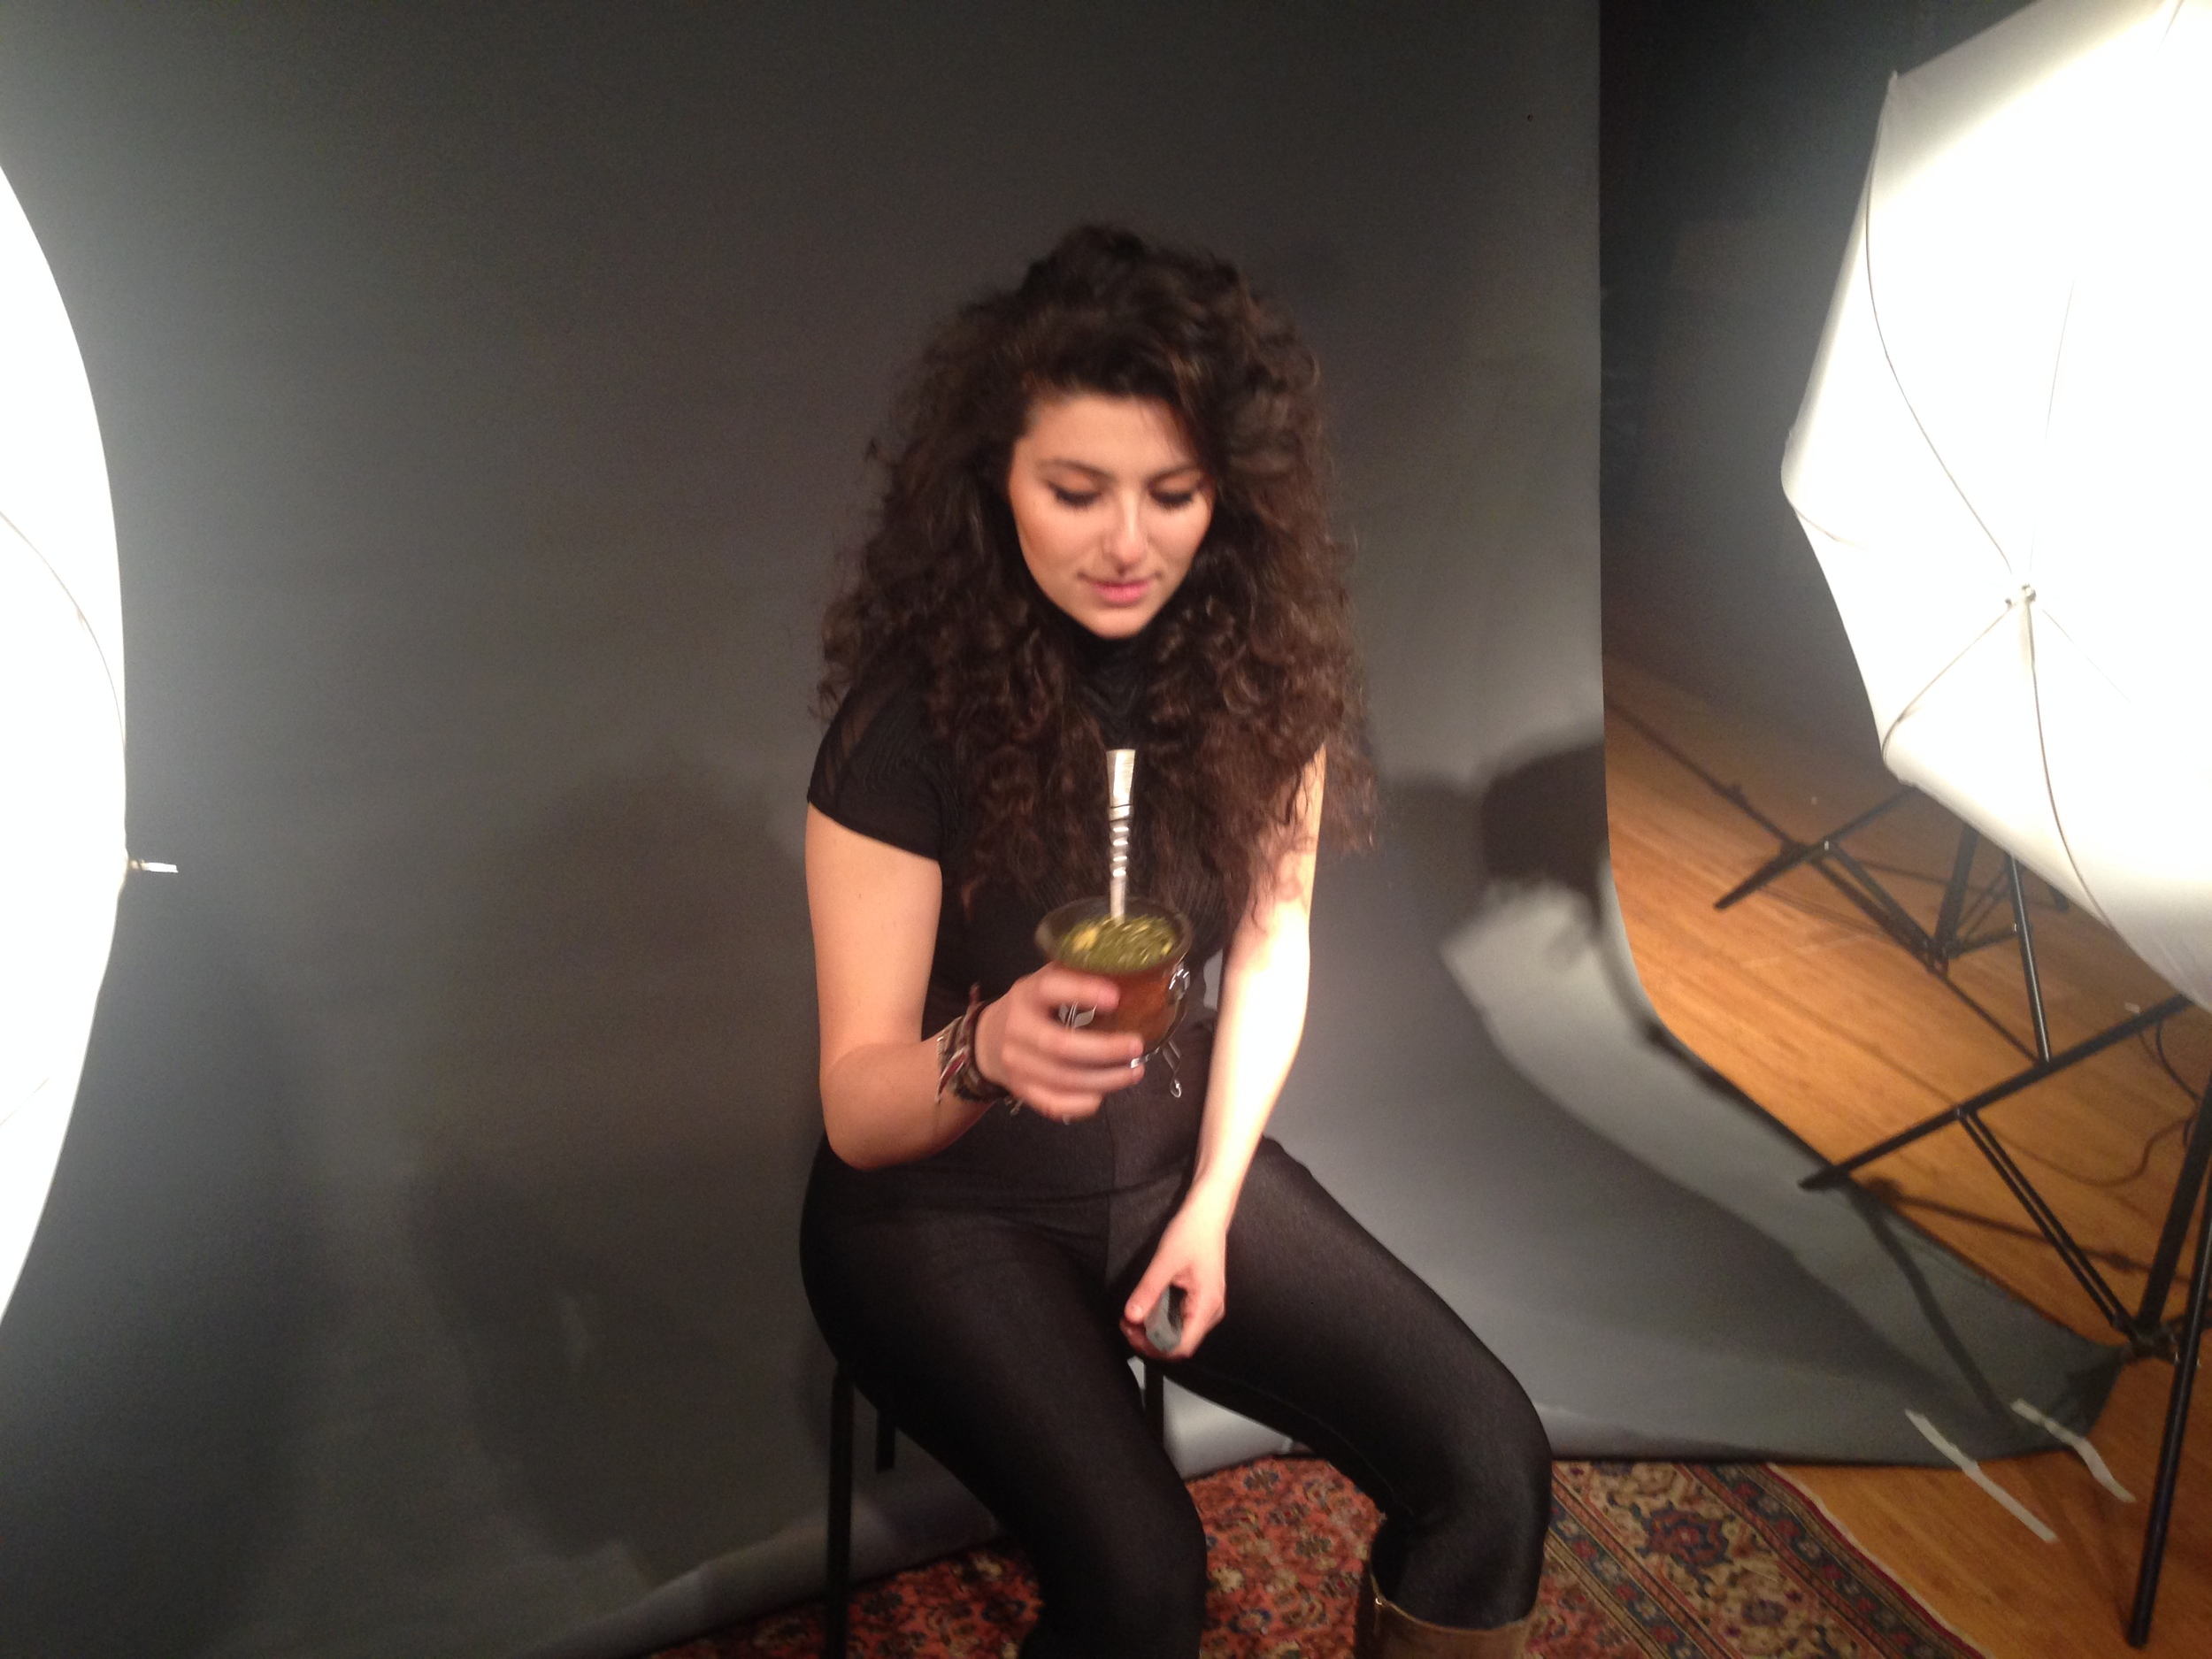 """Drinking mate while recording and shooting the music video for """"The Little Prince"""" for upcoming full length album at Studio 42, Brooklyn."""